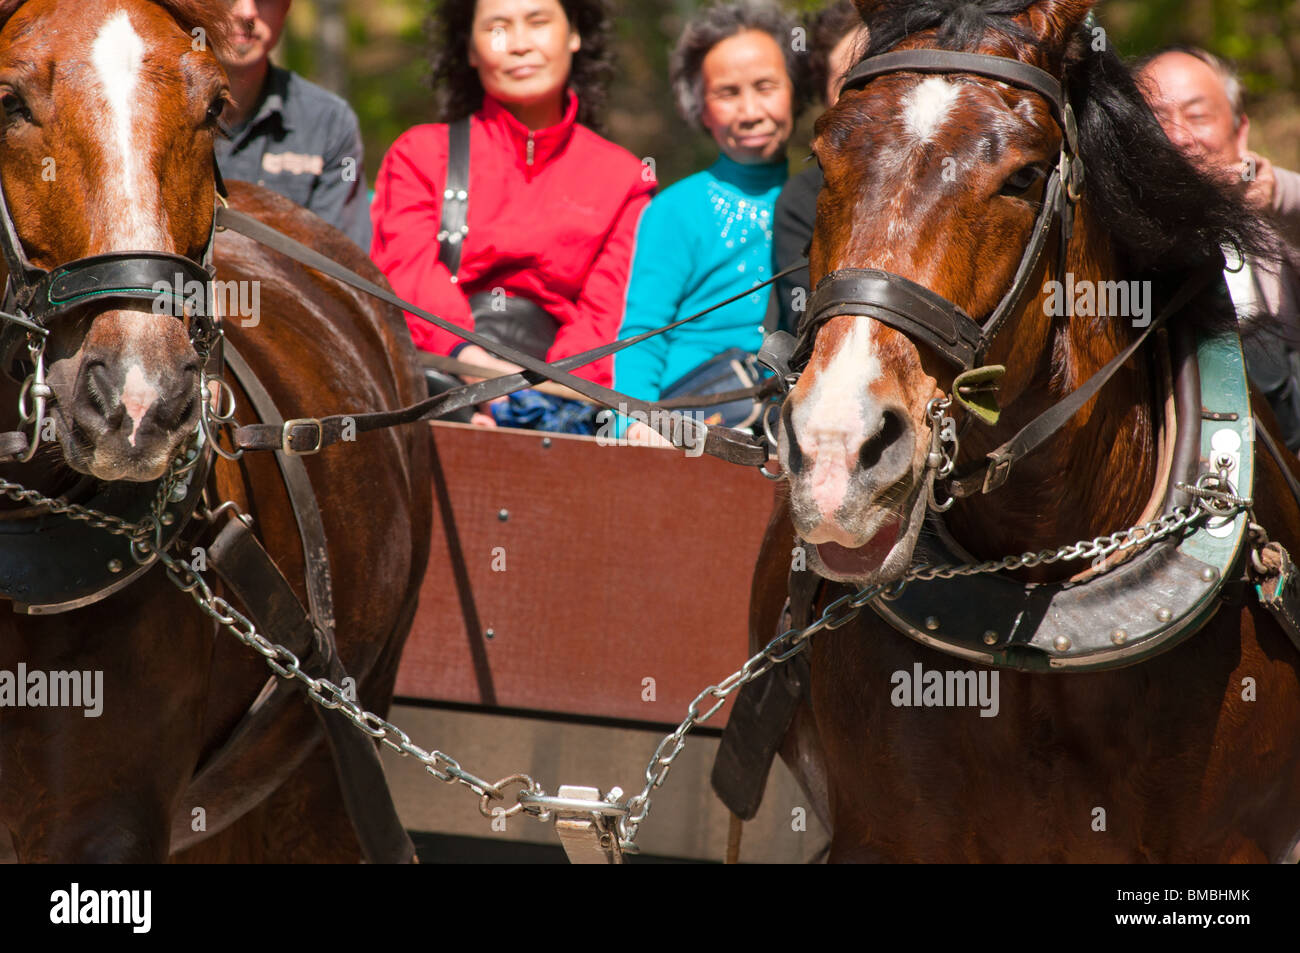 Chinese tourists in Germany enjoying a traditional horse carriage ride near Neuschwanstein Castle. Stock Photo